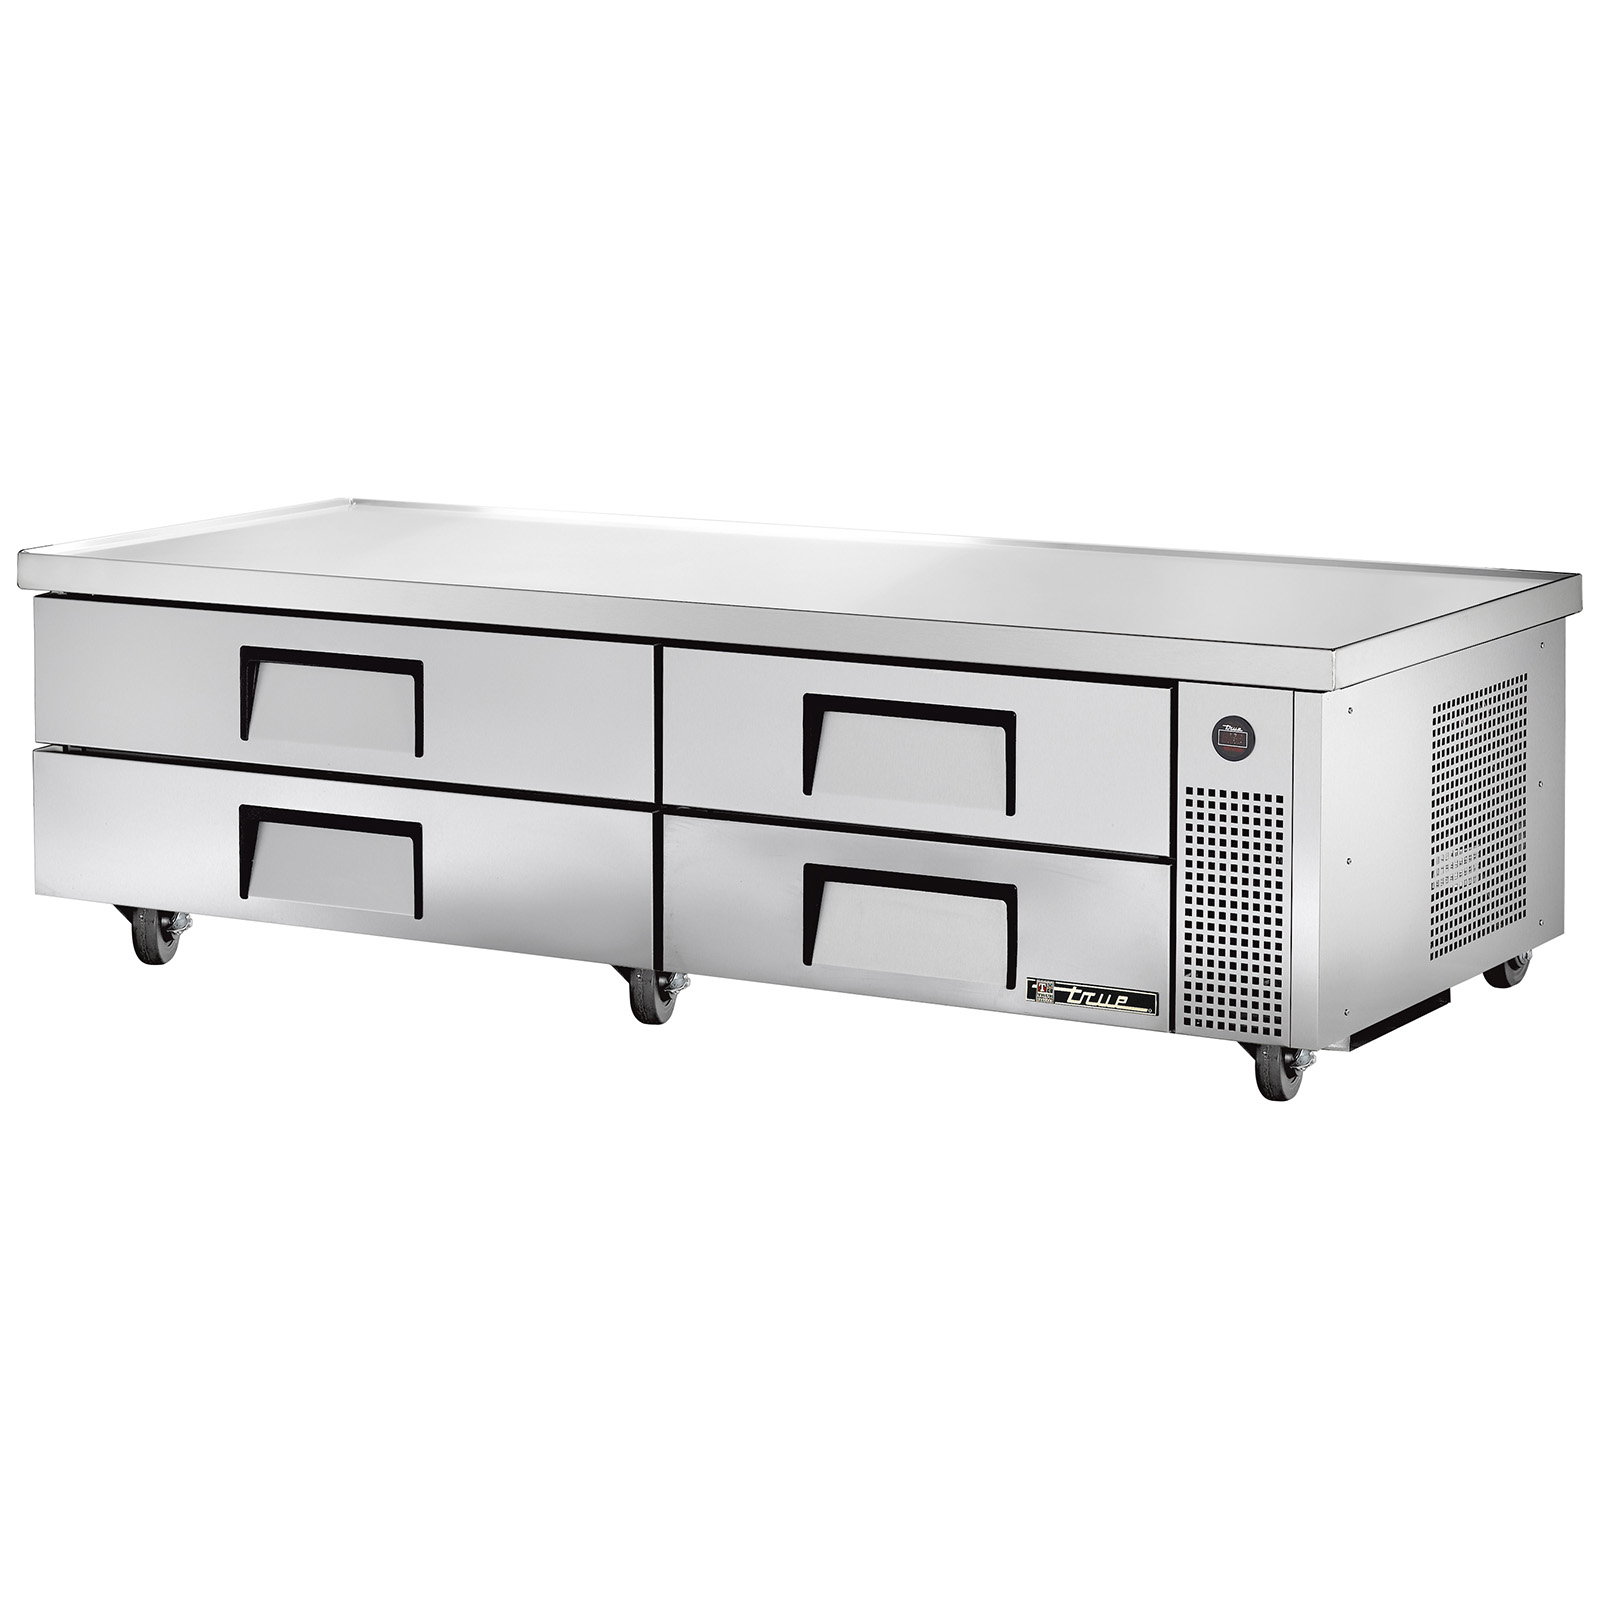 TRCB-82-84 True - Refrigerated Chef Base 82-3/8